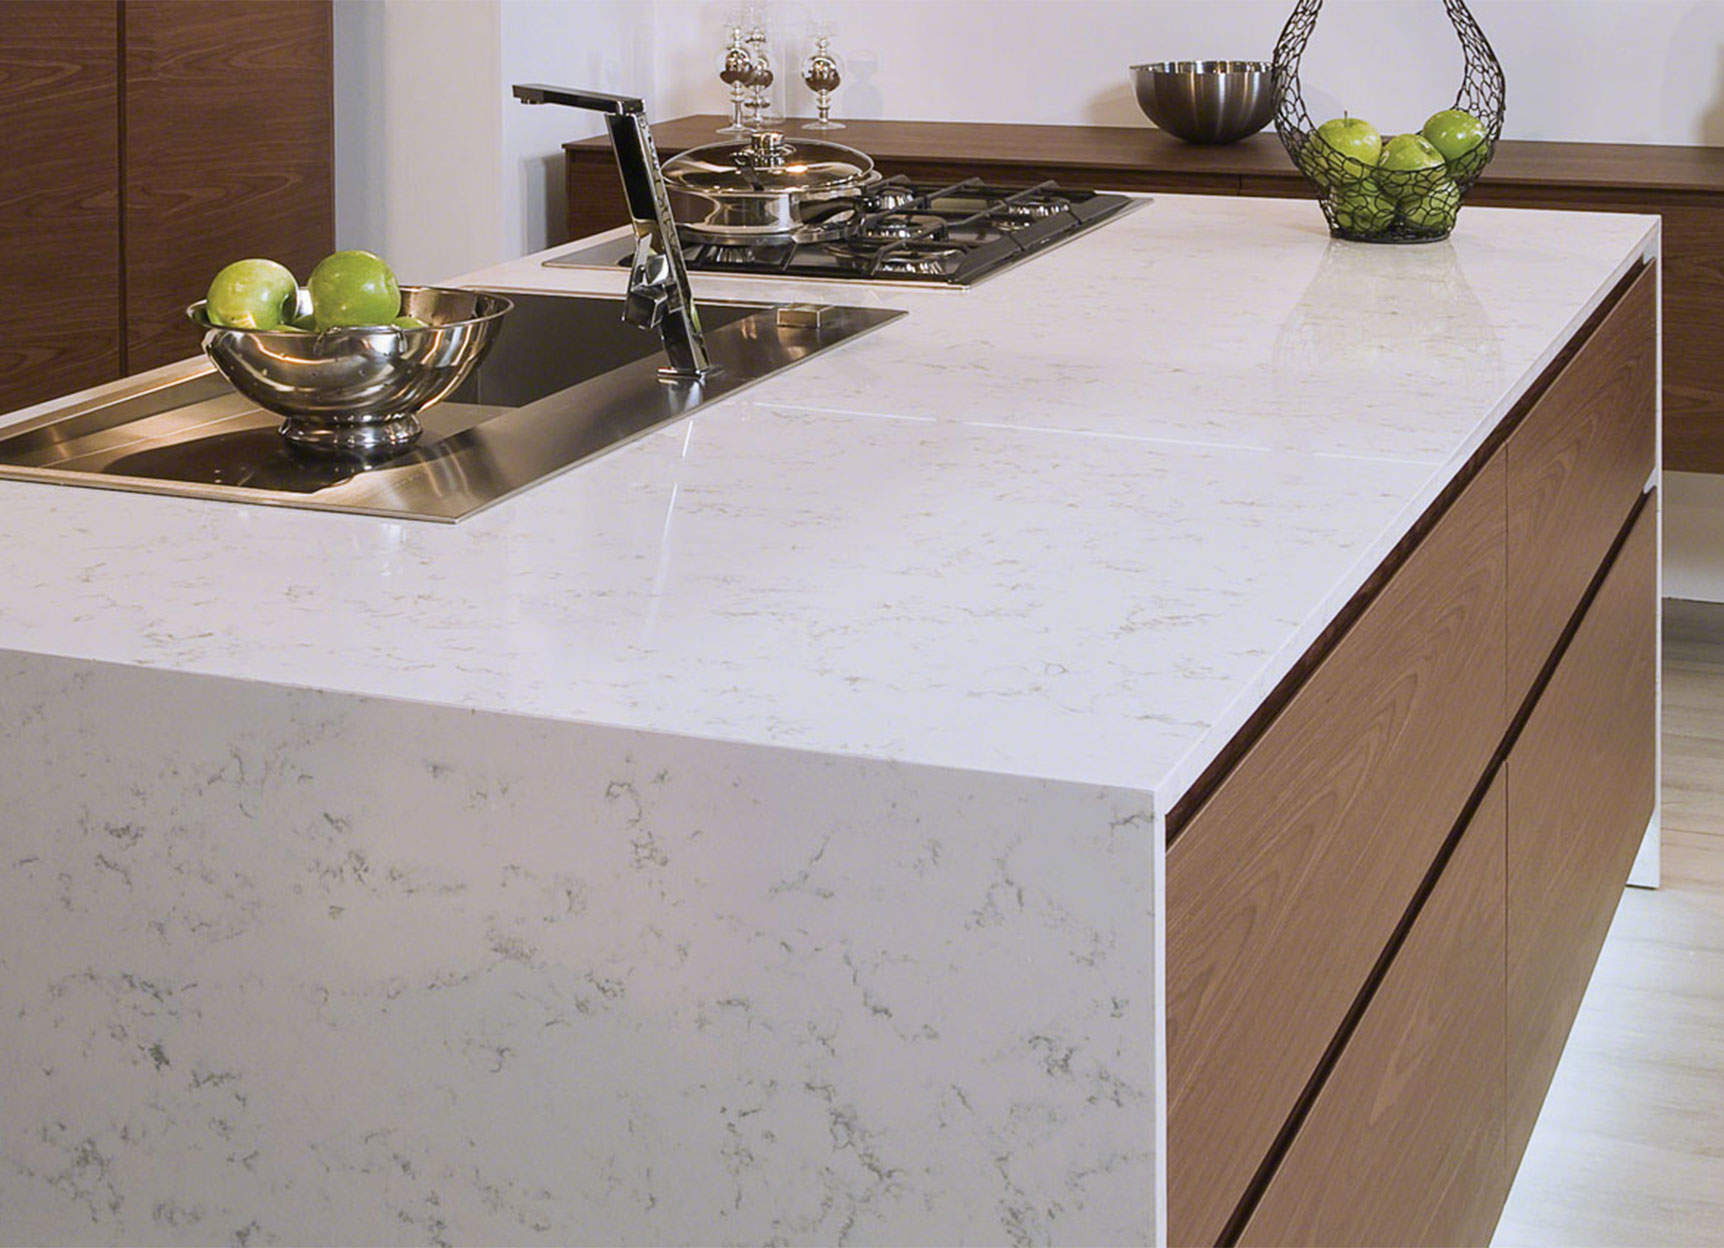 seams should and countertops countertop counter the questions on polishing wall a how seam noticeable qkbwk install quartz be